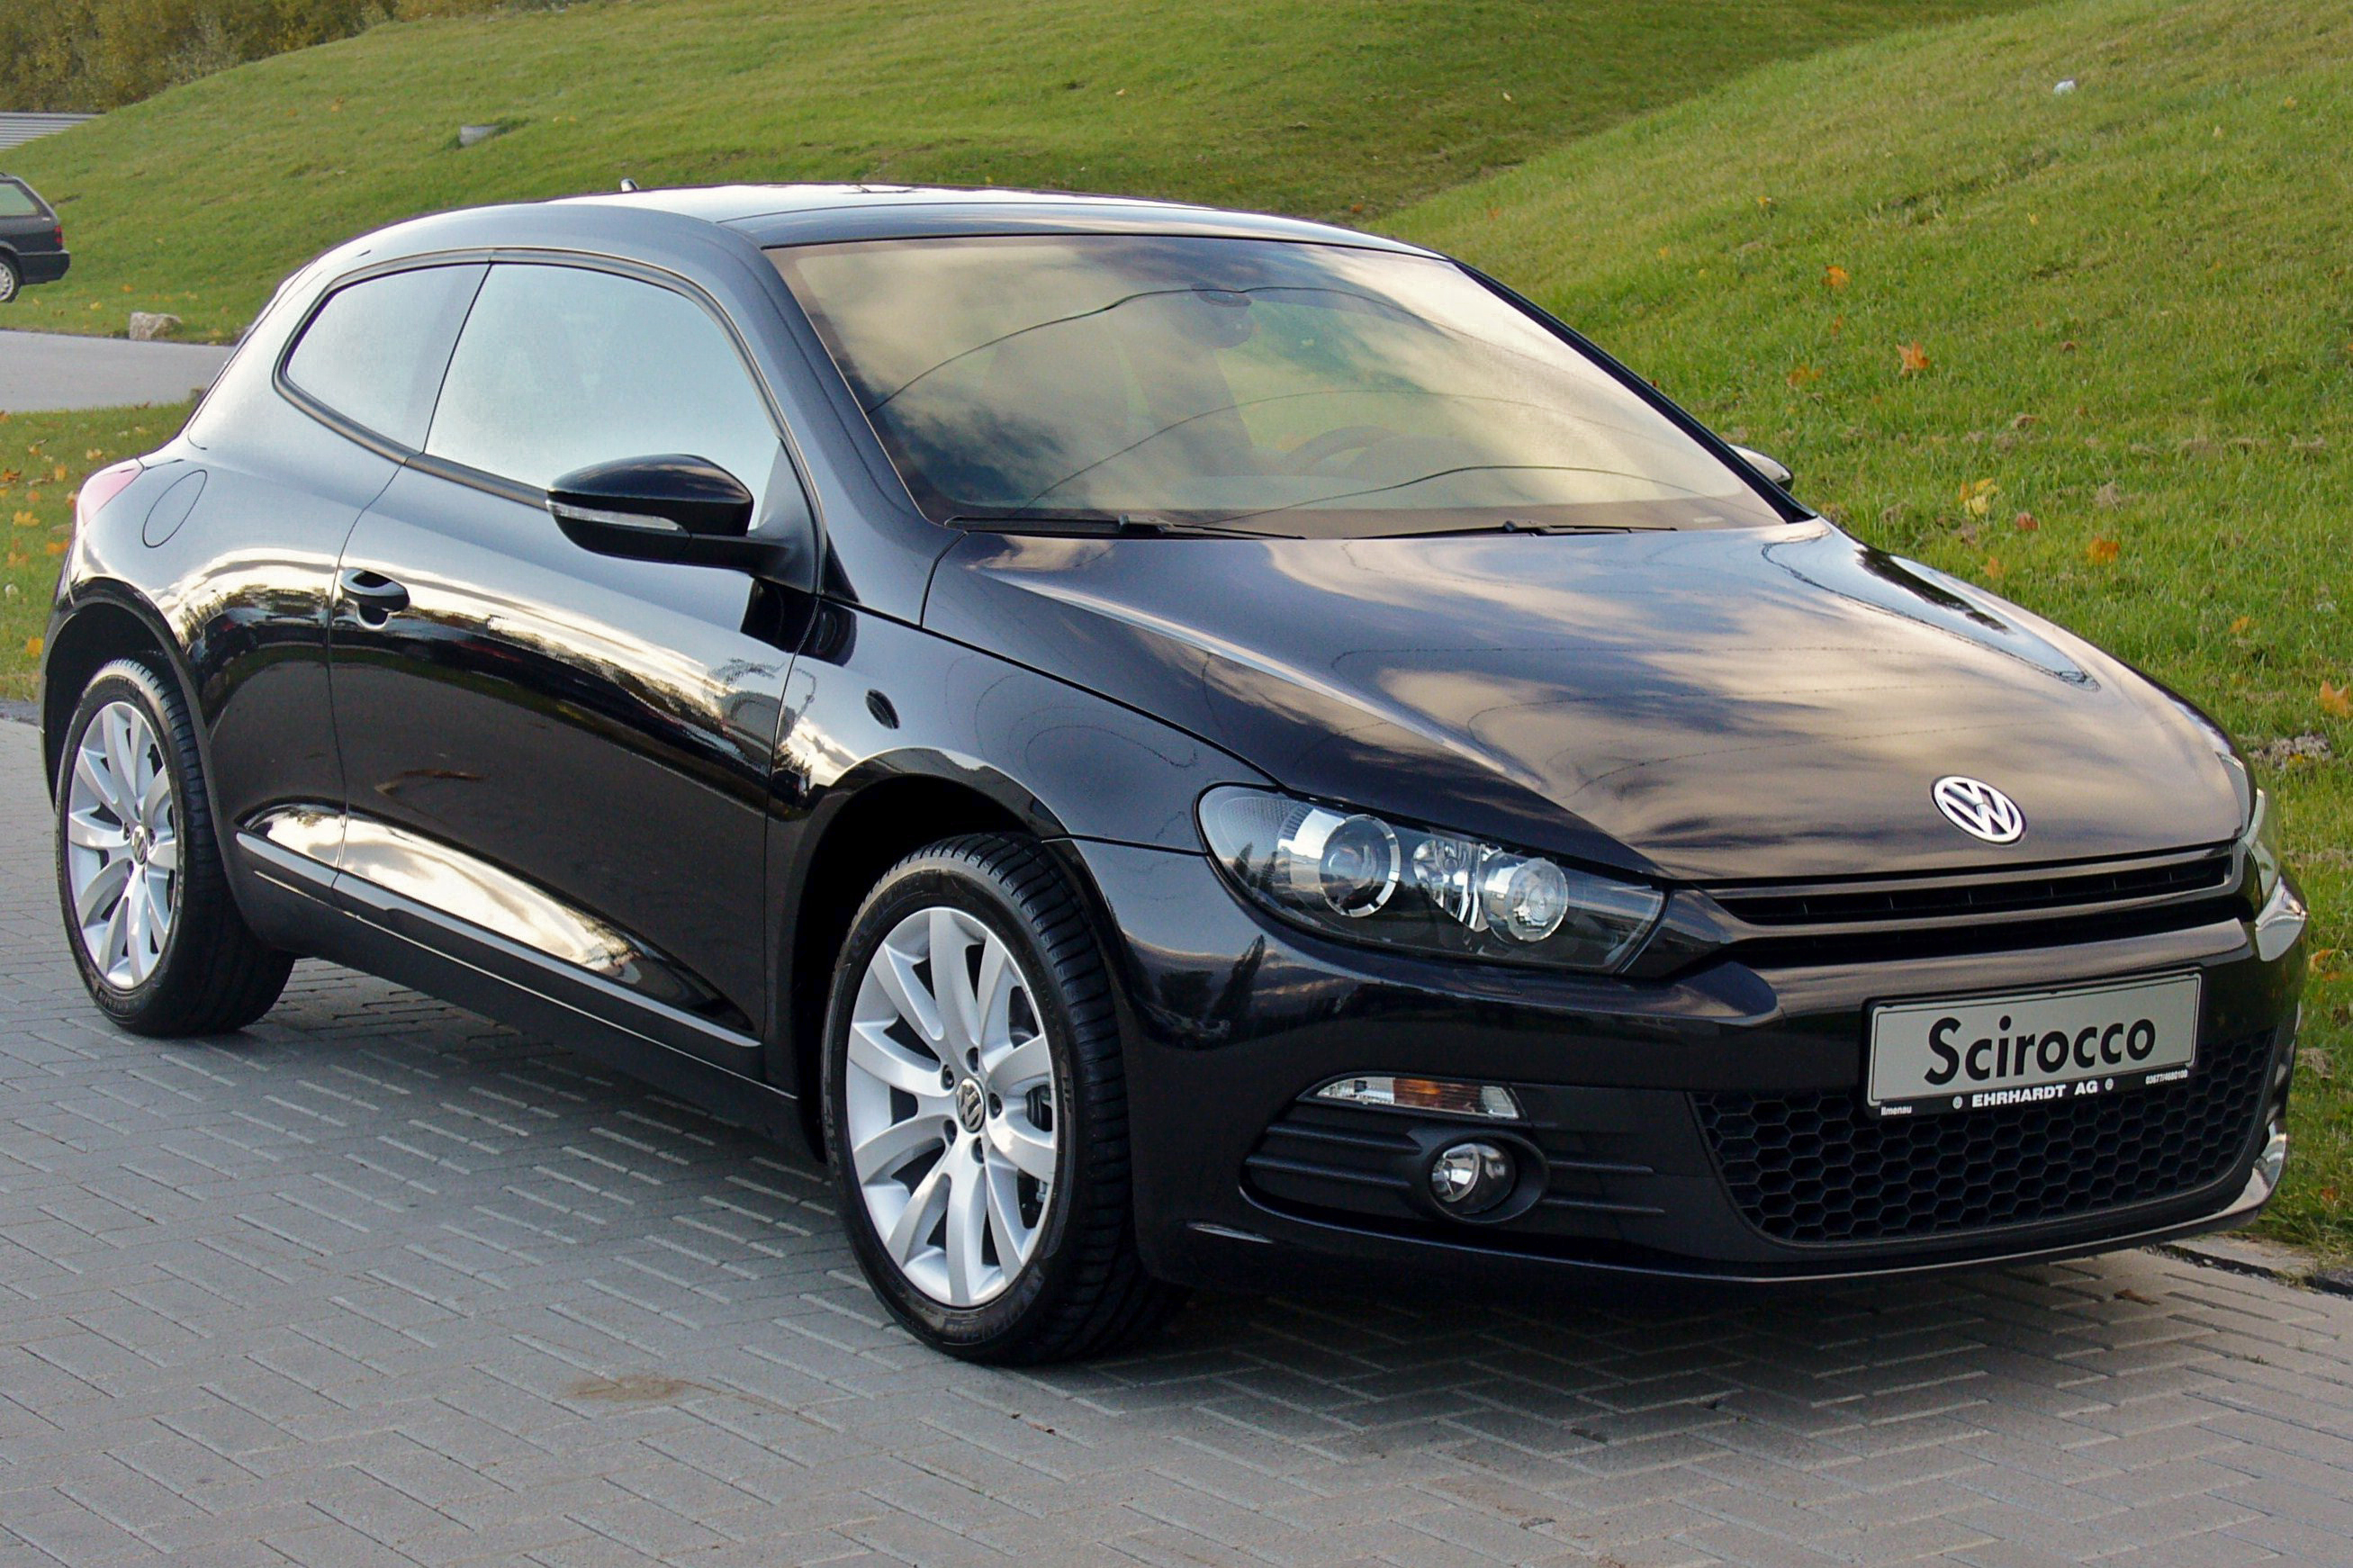 volkswagen scirocco 1 4 tsi photos and comments www. Black Bedroom Furniture Sets. Home Design Ideas